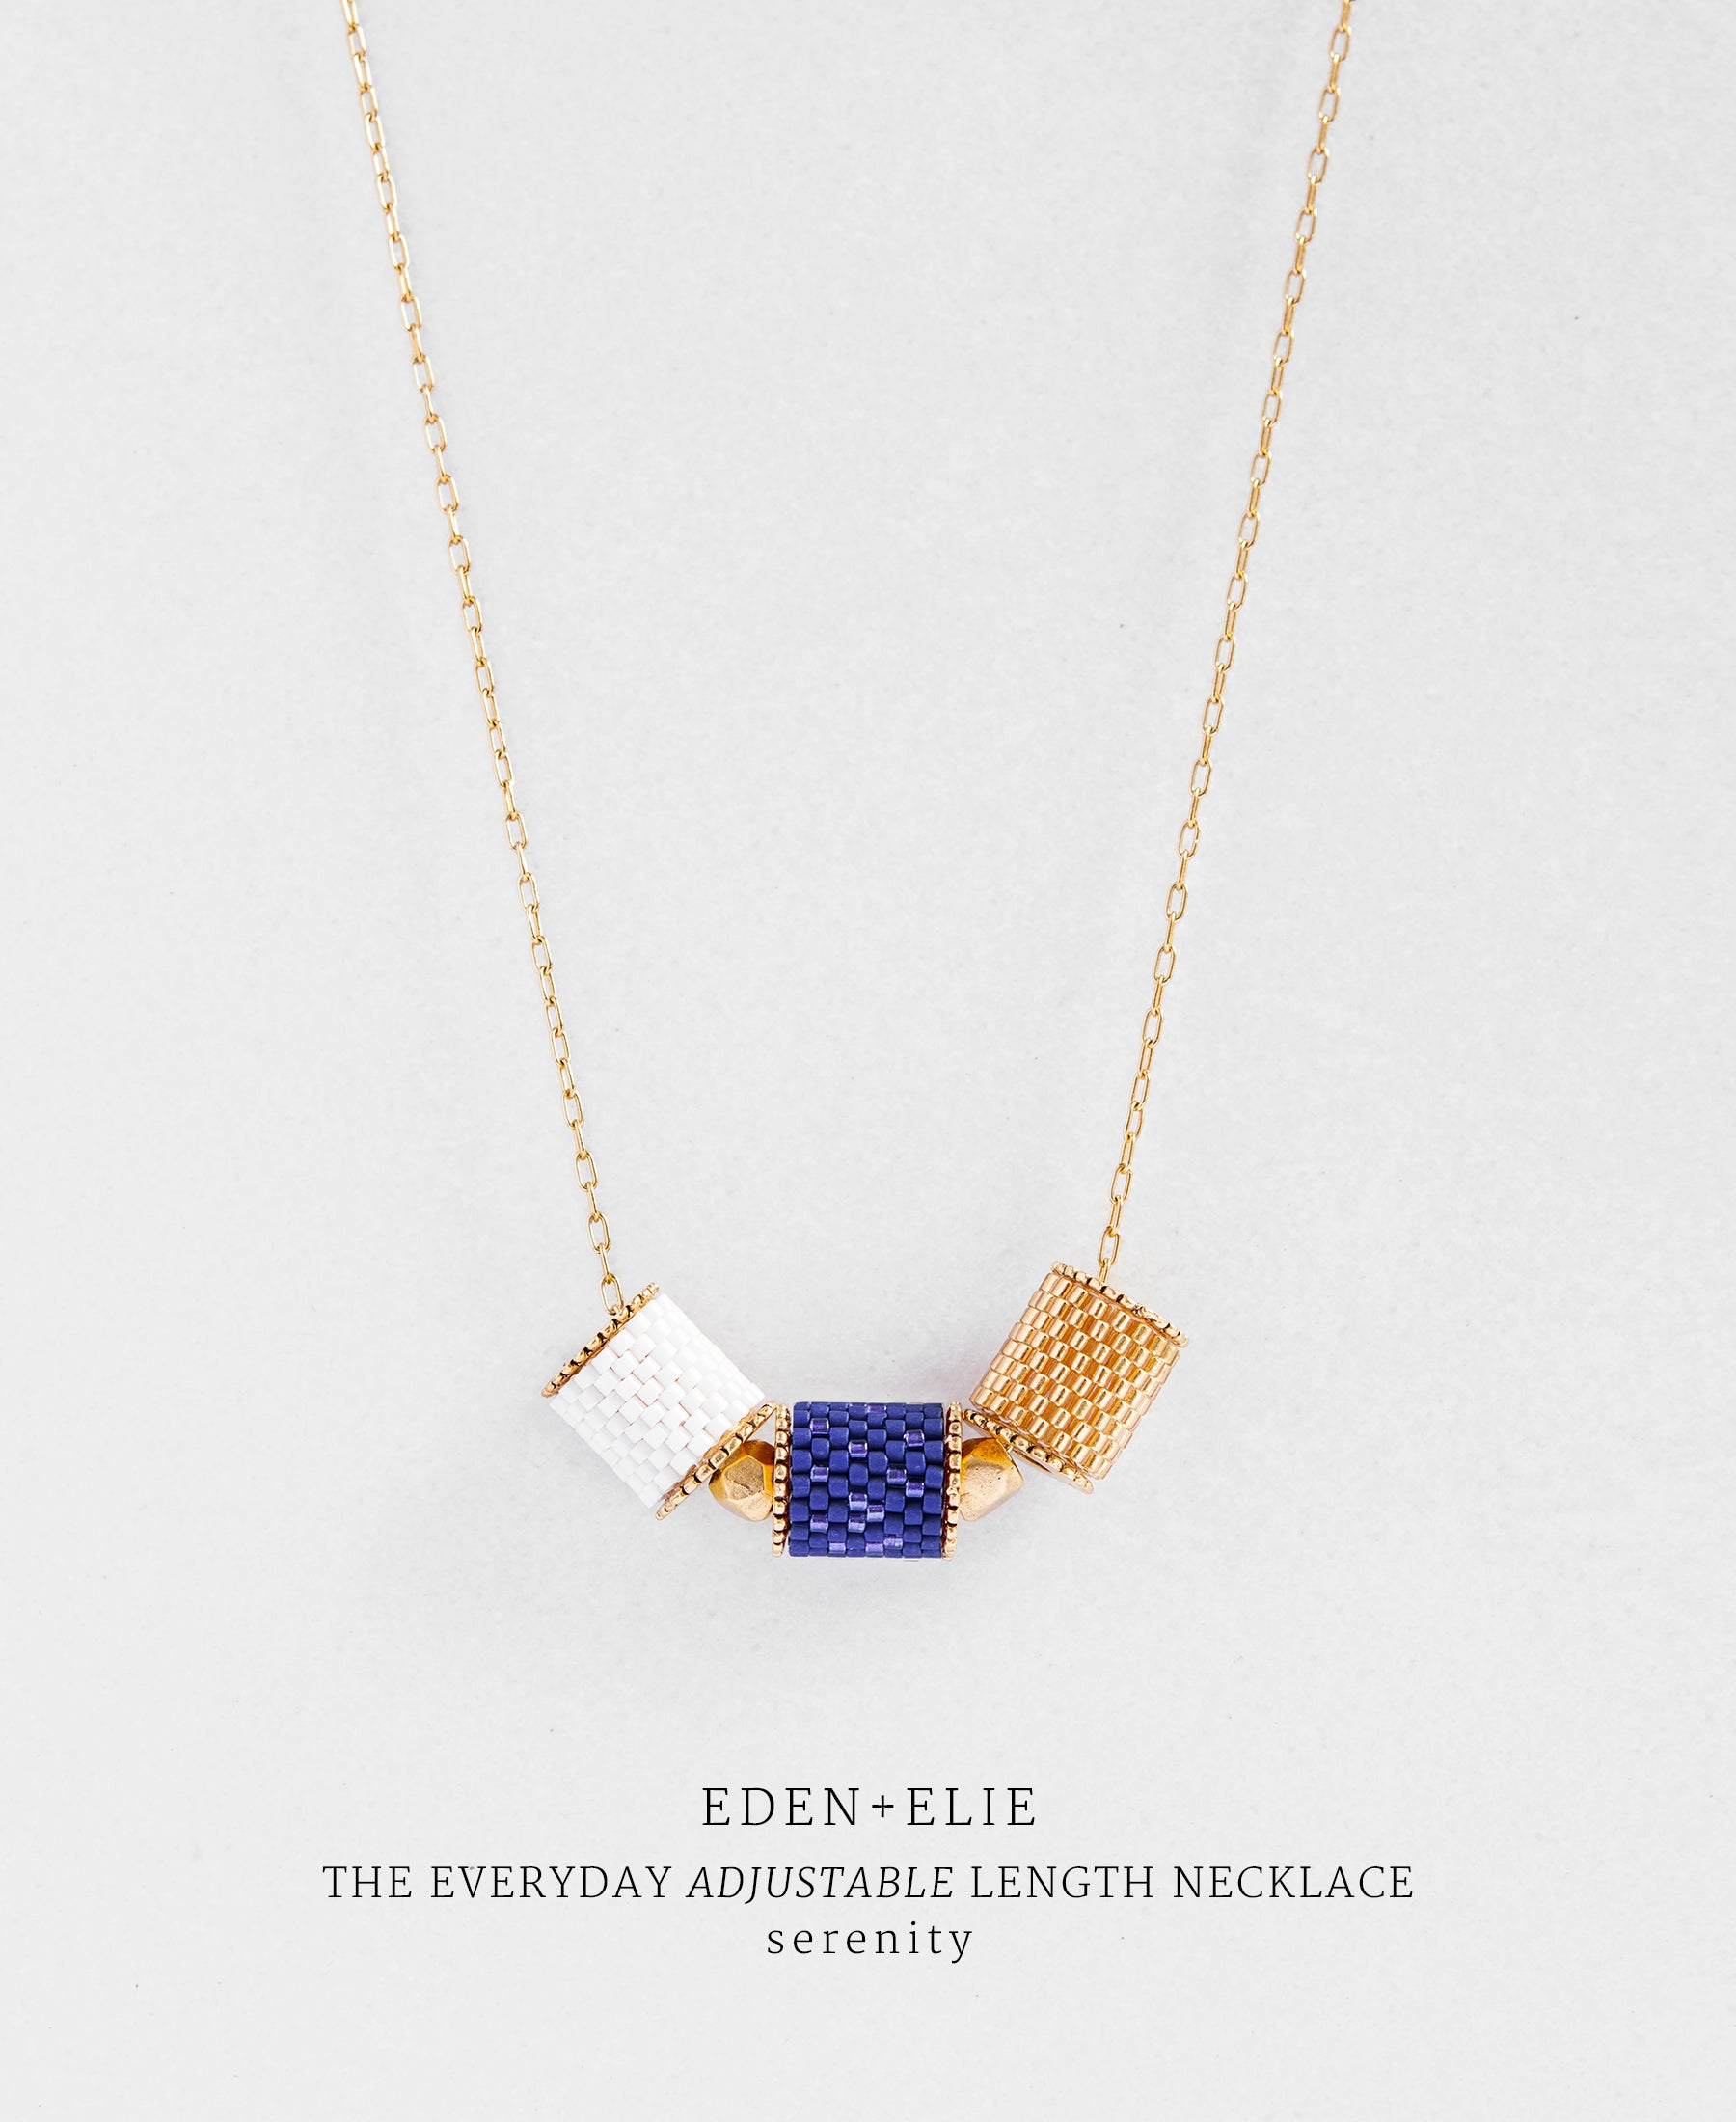 EDEN + ELIE Everyday adjustable length necklace - serenity blue